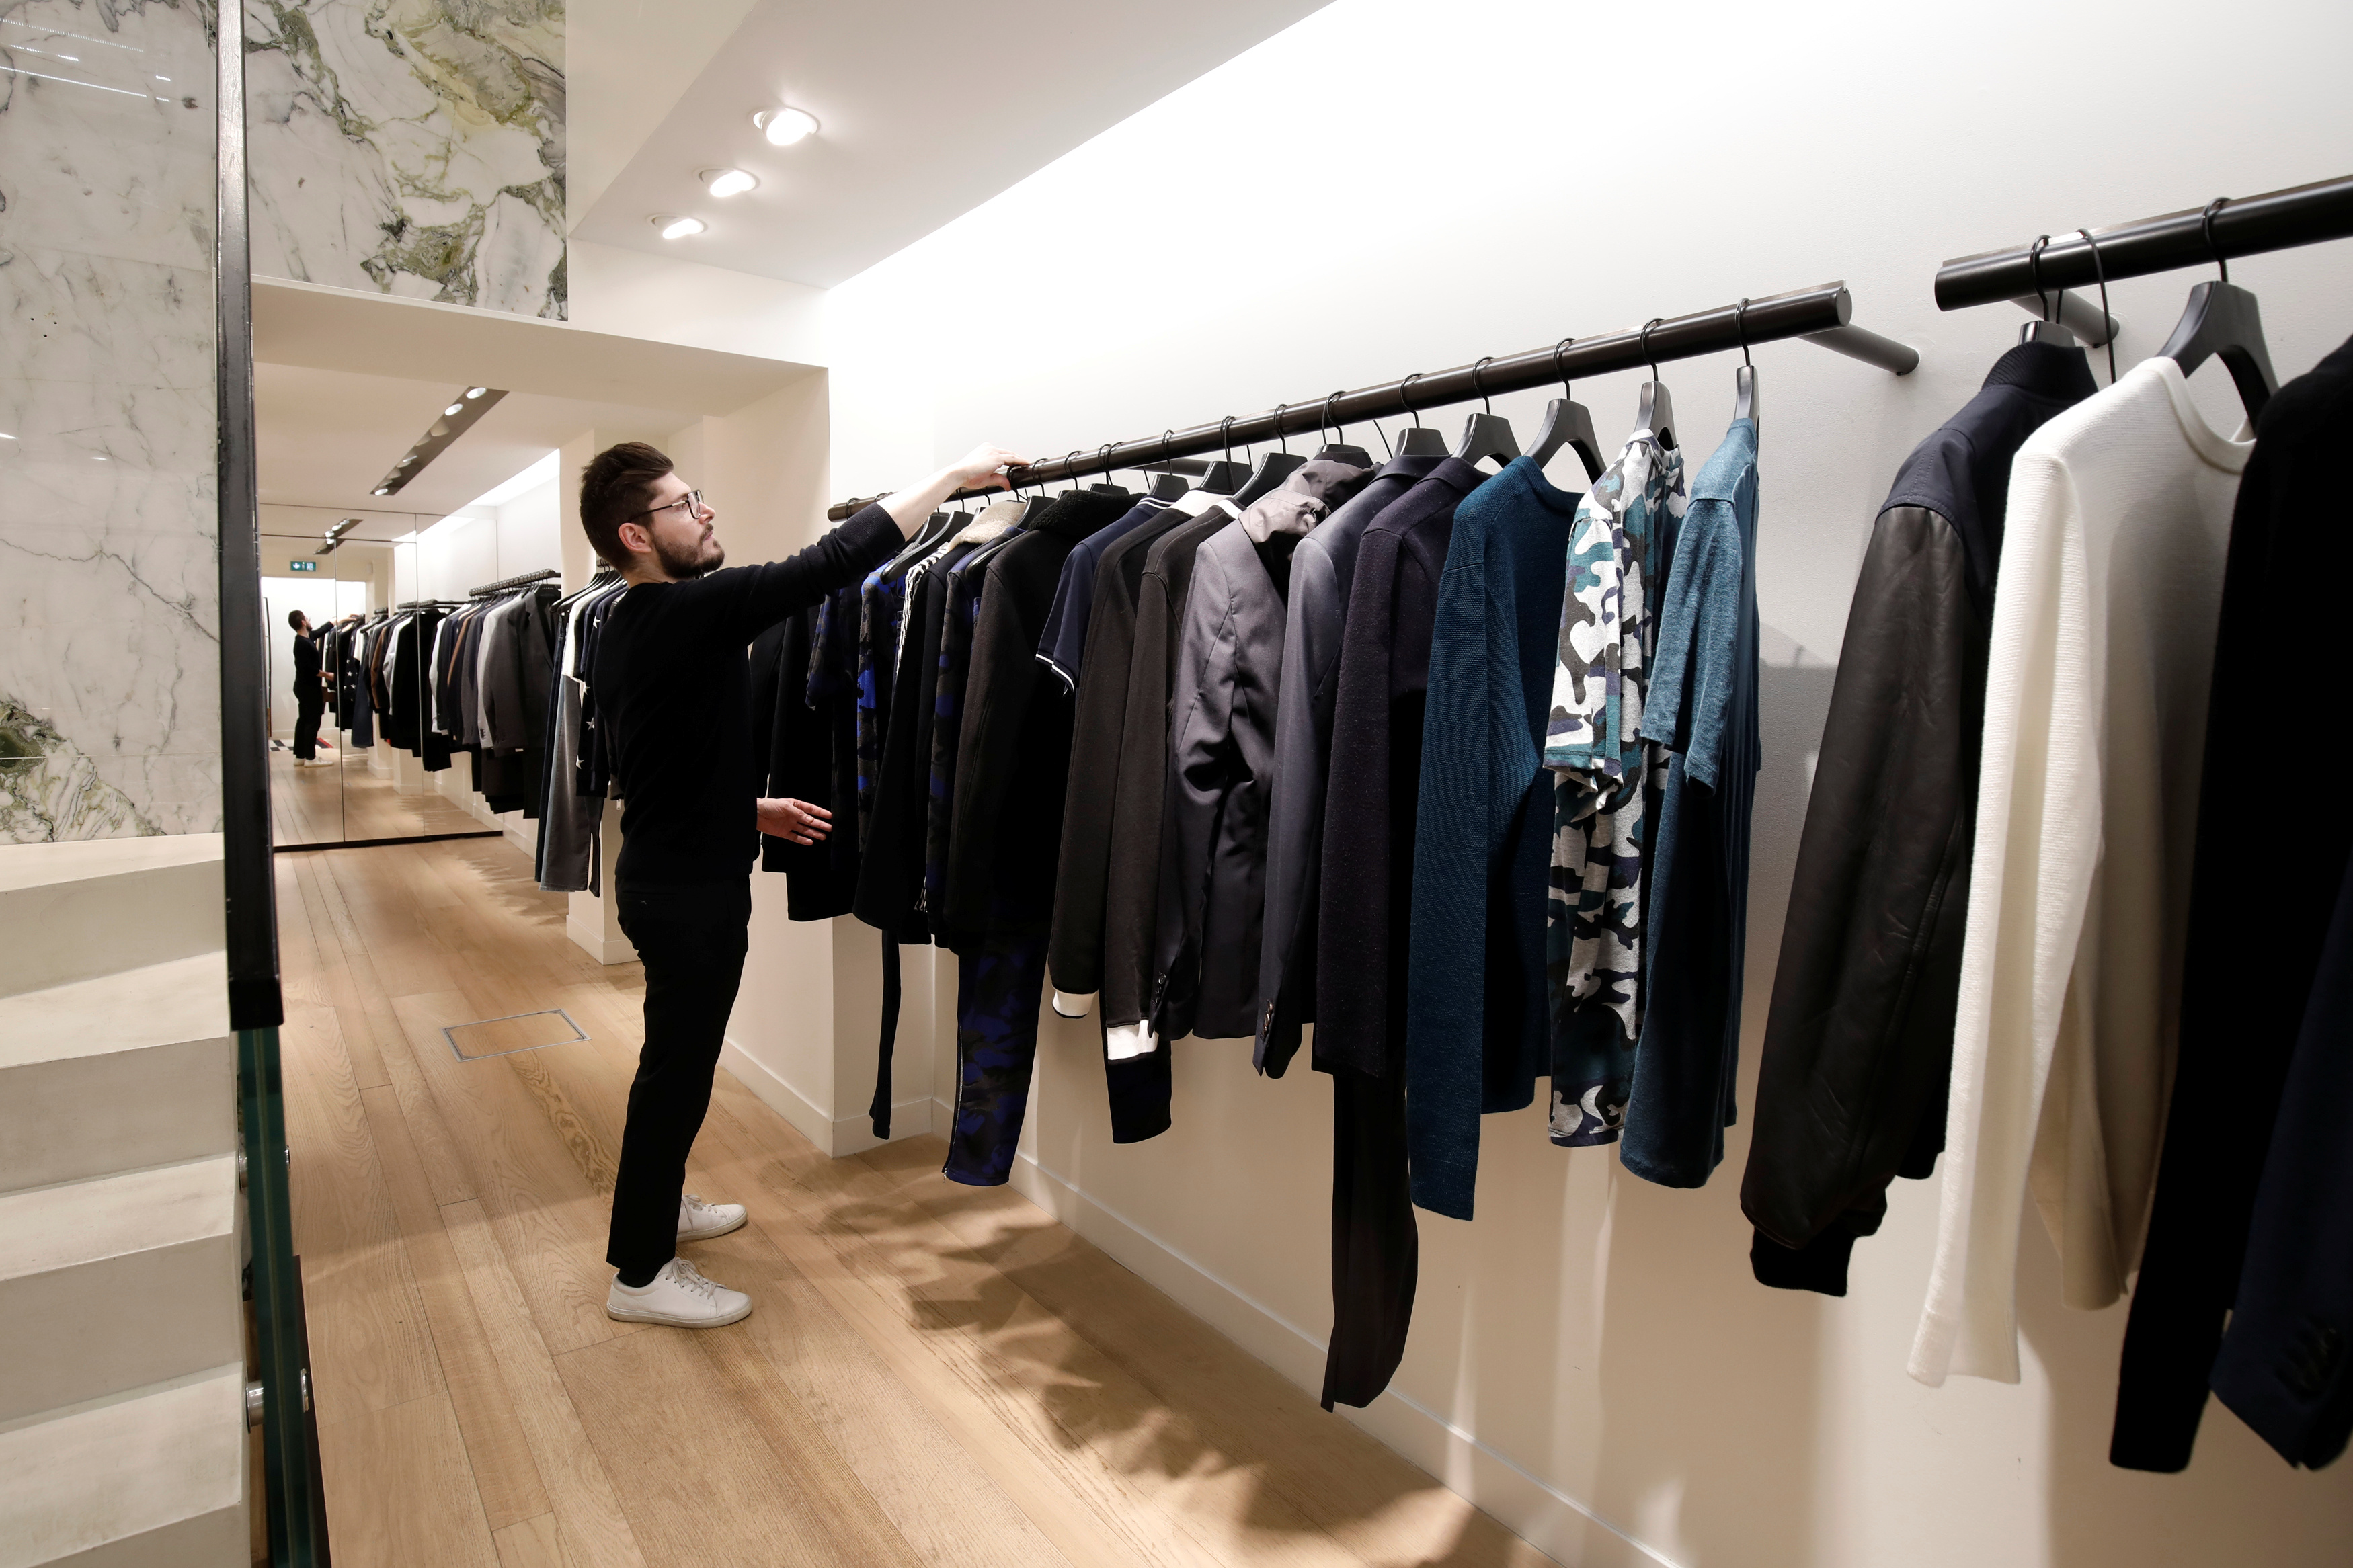 An employee arranges a clothing display inside a Sandro luxury clothing store, operated by SMCP Group, in Paris, France, December 21, 2017. REUTERS/Benoit Tessier